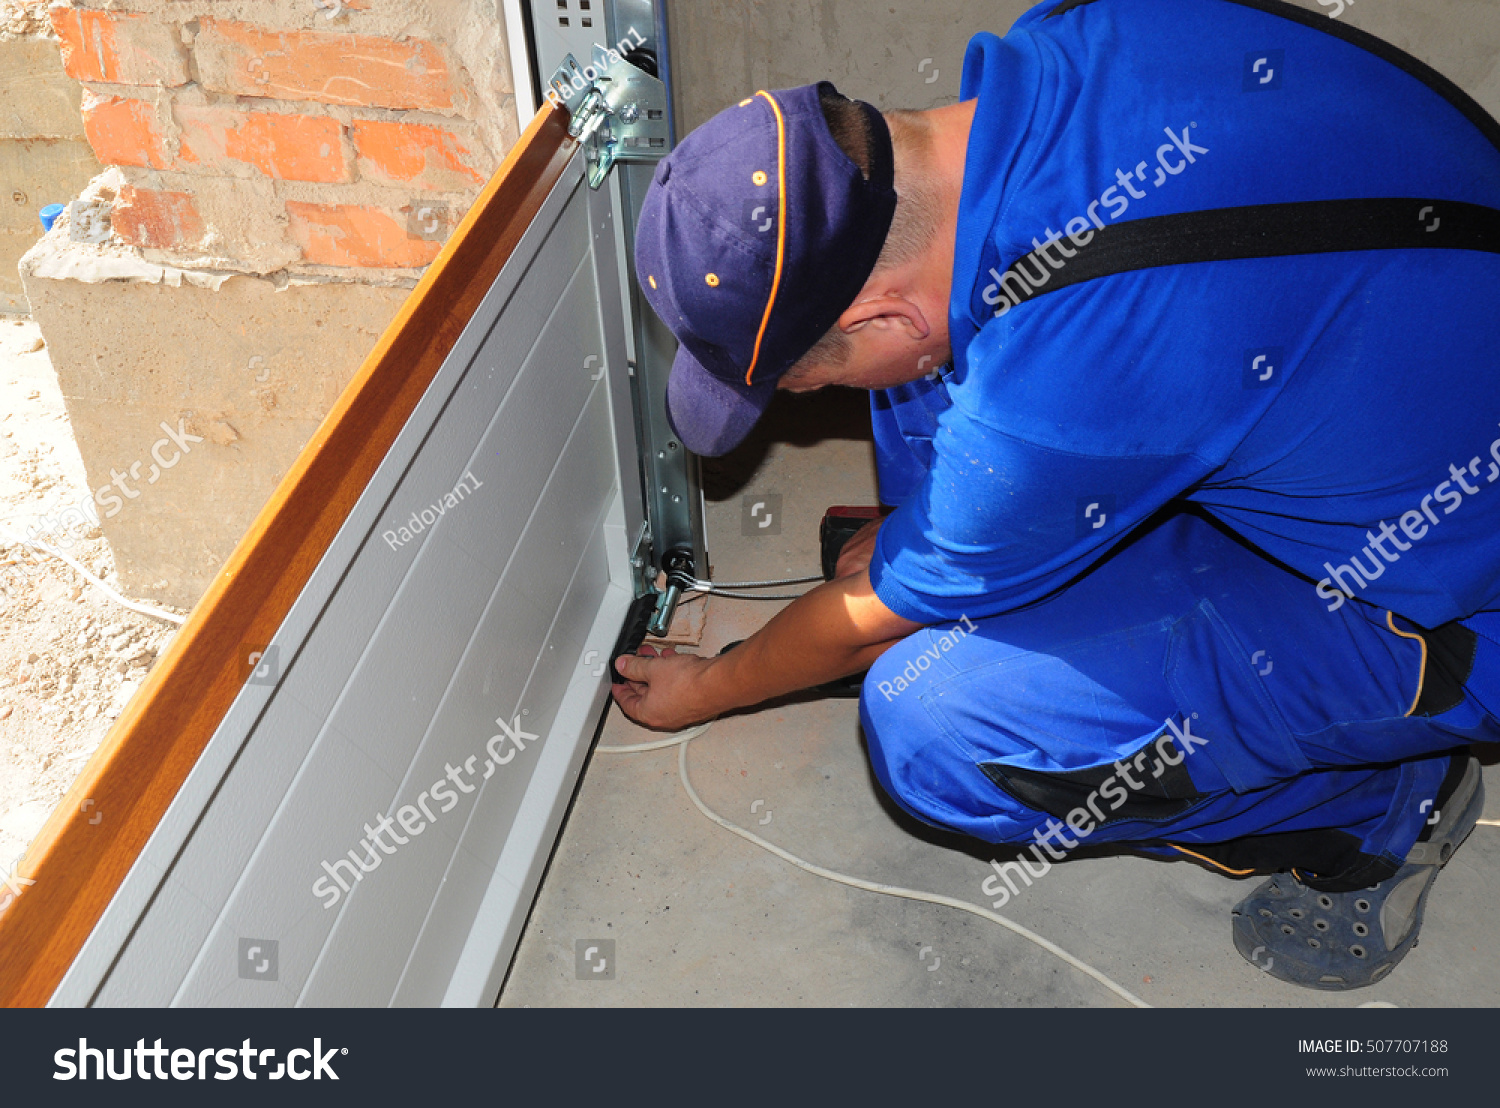 lovely cost me springs near awesome recommended xjk ideas resolution codets wallpaper partsgarage tub cpl replacement u color door high in torsion dallas repair tumblr and changing miami spring garage